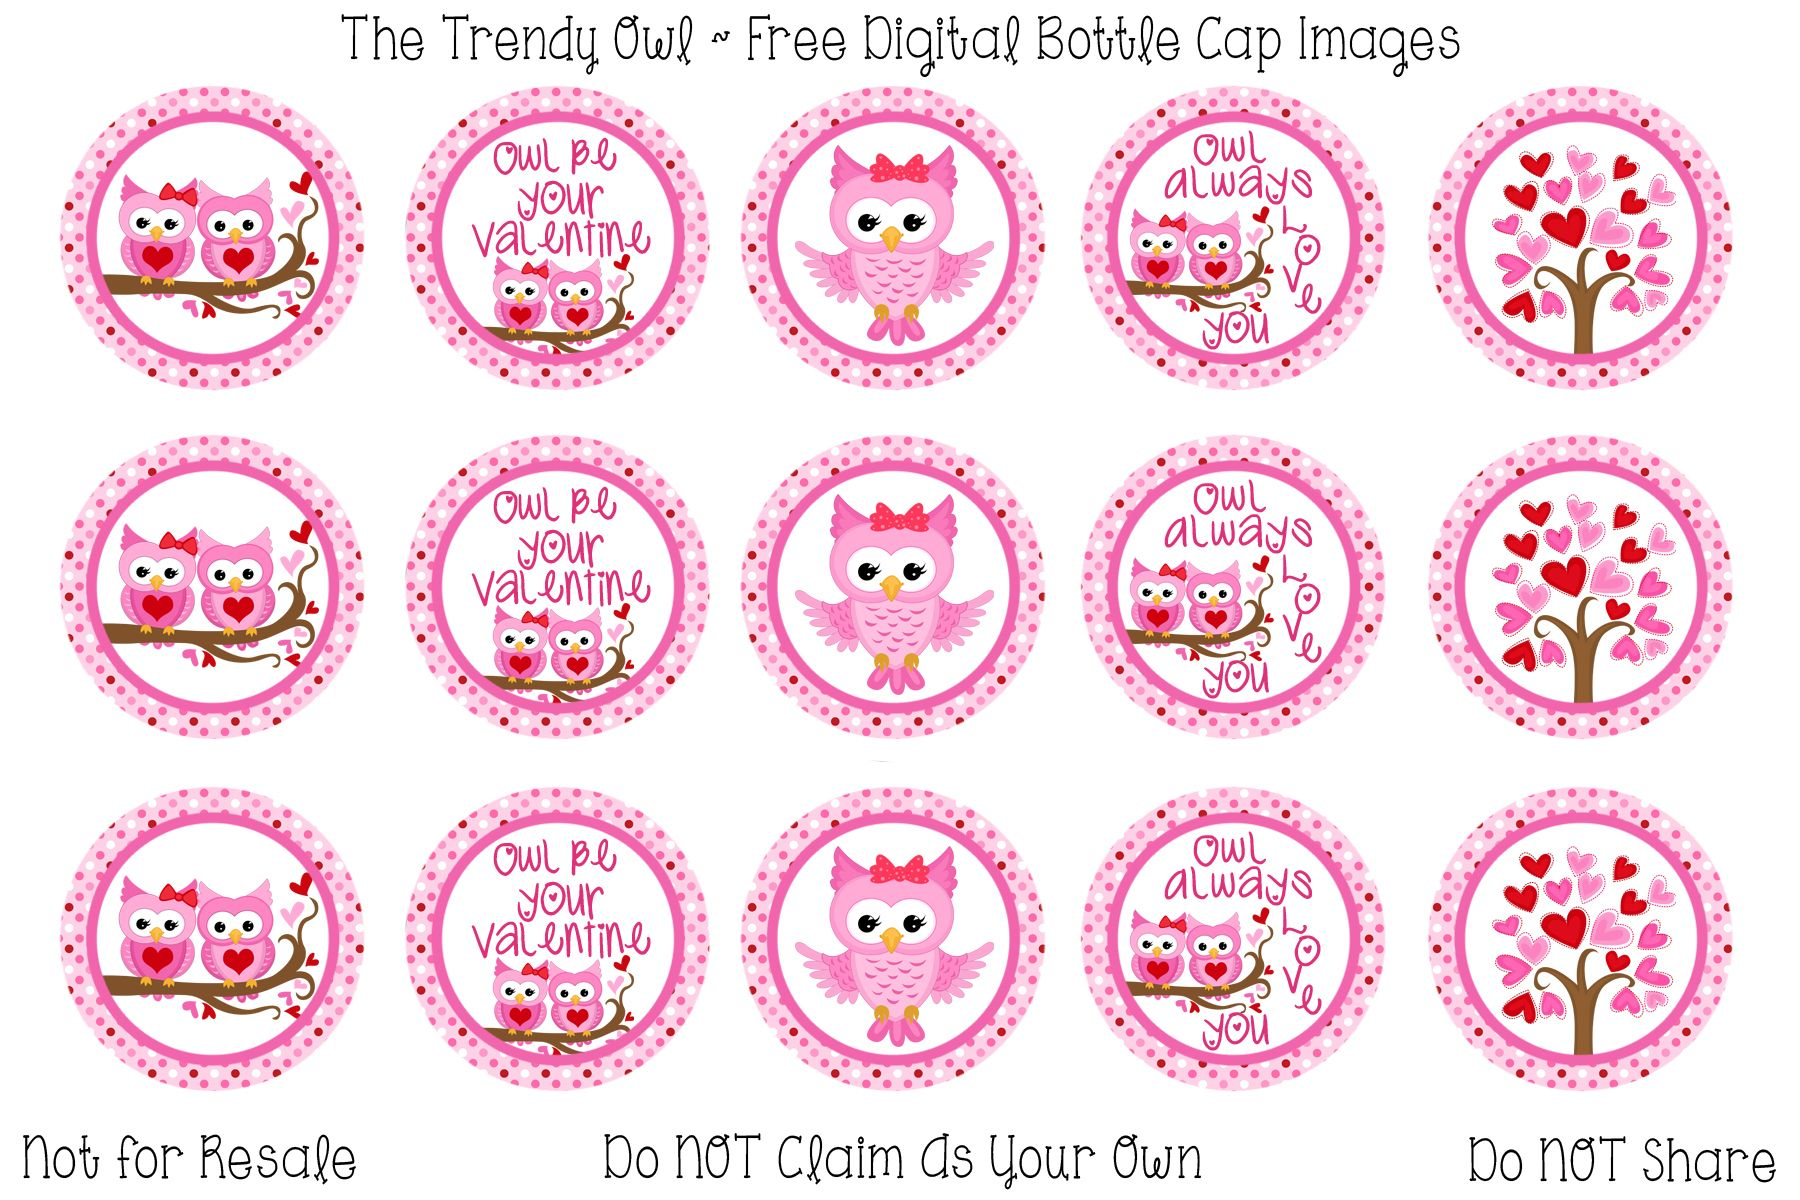 Pin By The Trendy Owl On The Vault Free Digital Bottle Cap